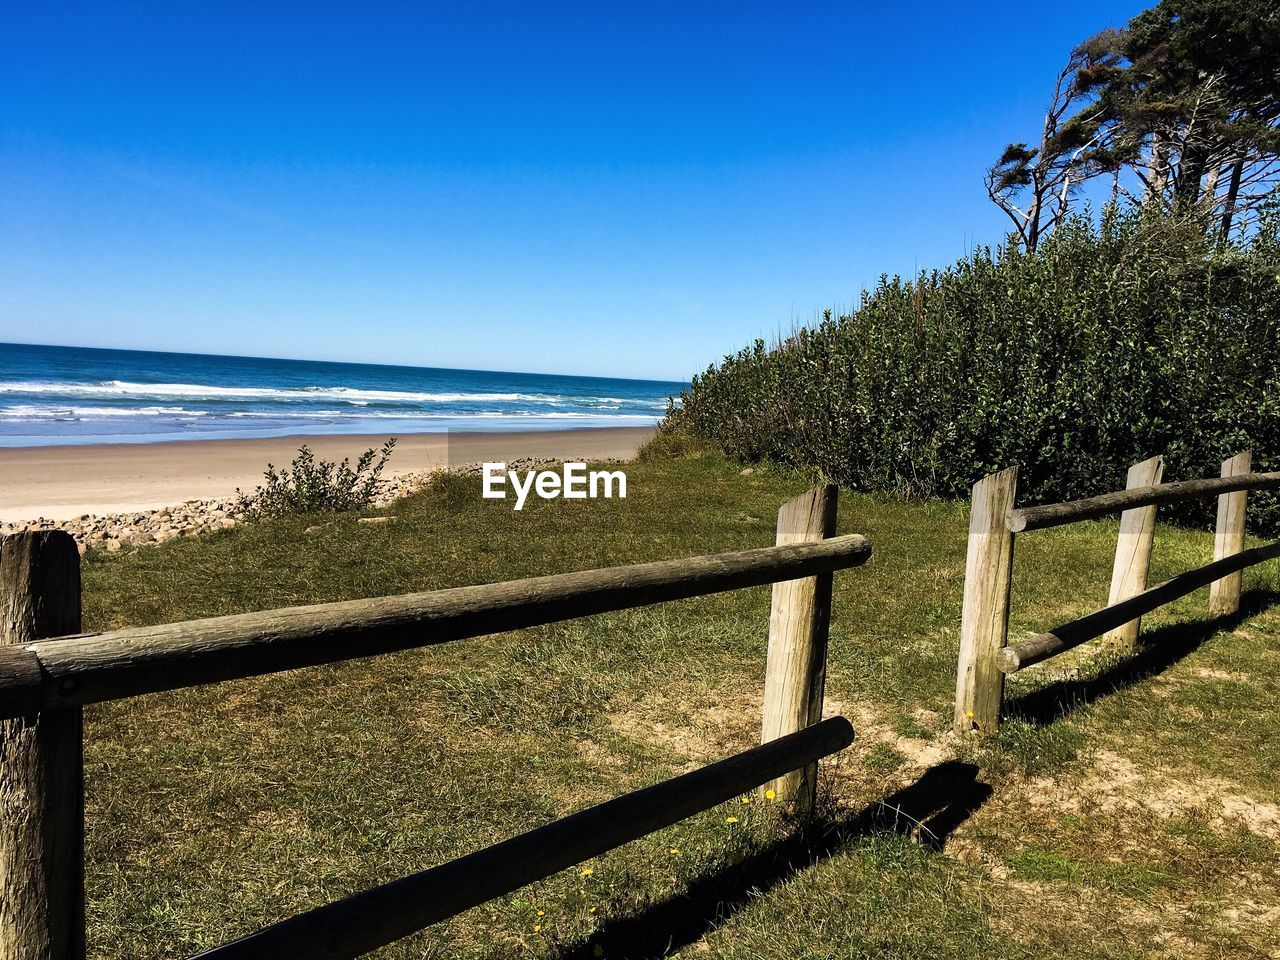 sea, railing, nature, beauty in nature, scenics, tranquil scene, tranquility, beach, tree, water, sunlight, wood - material, day, sky, horizon over water, outdoors, no people, blue, clear sky, grass, growth